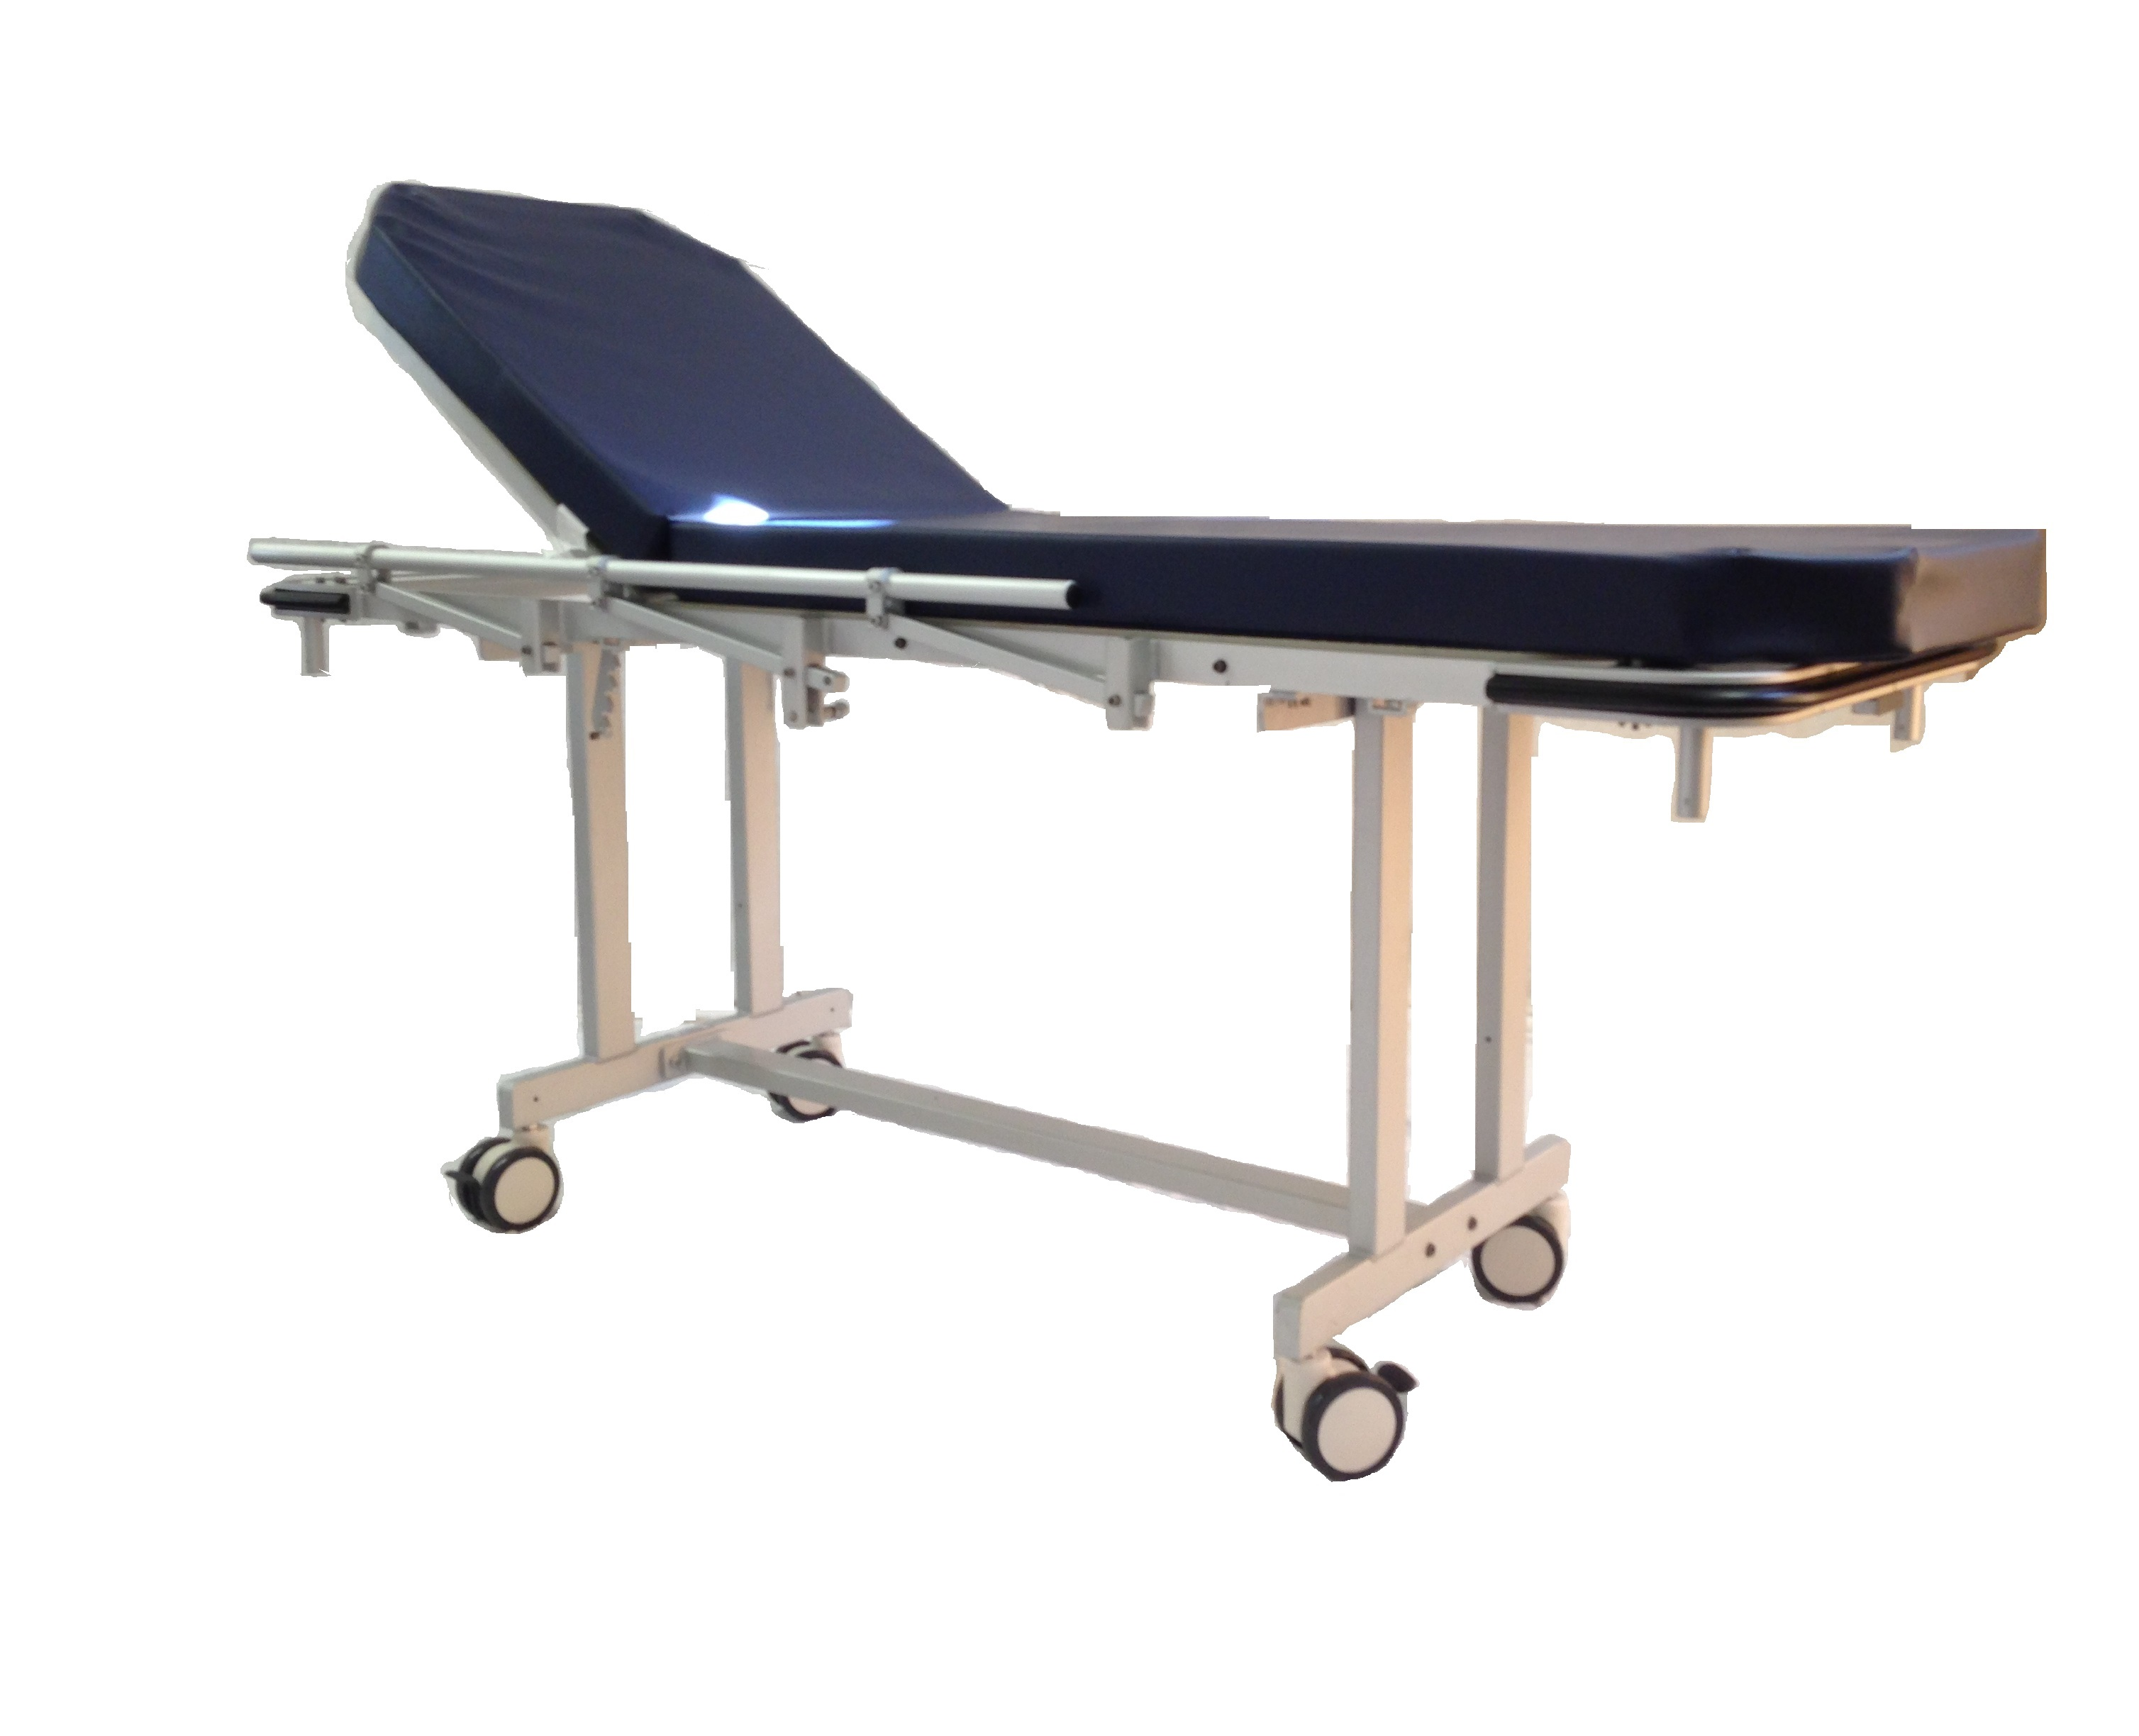 Replacement Pad for MRI Stretchers